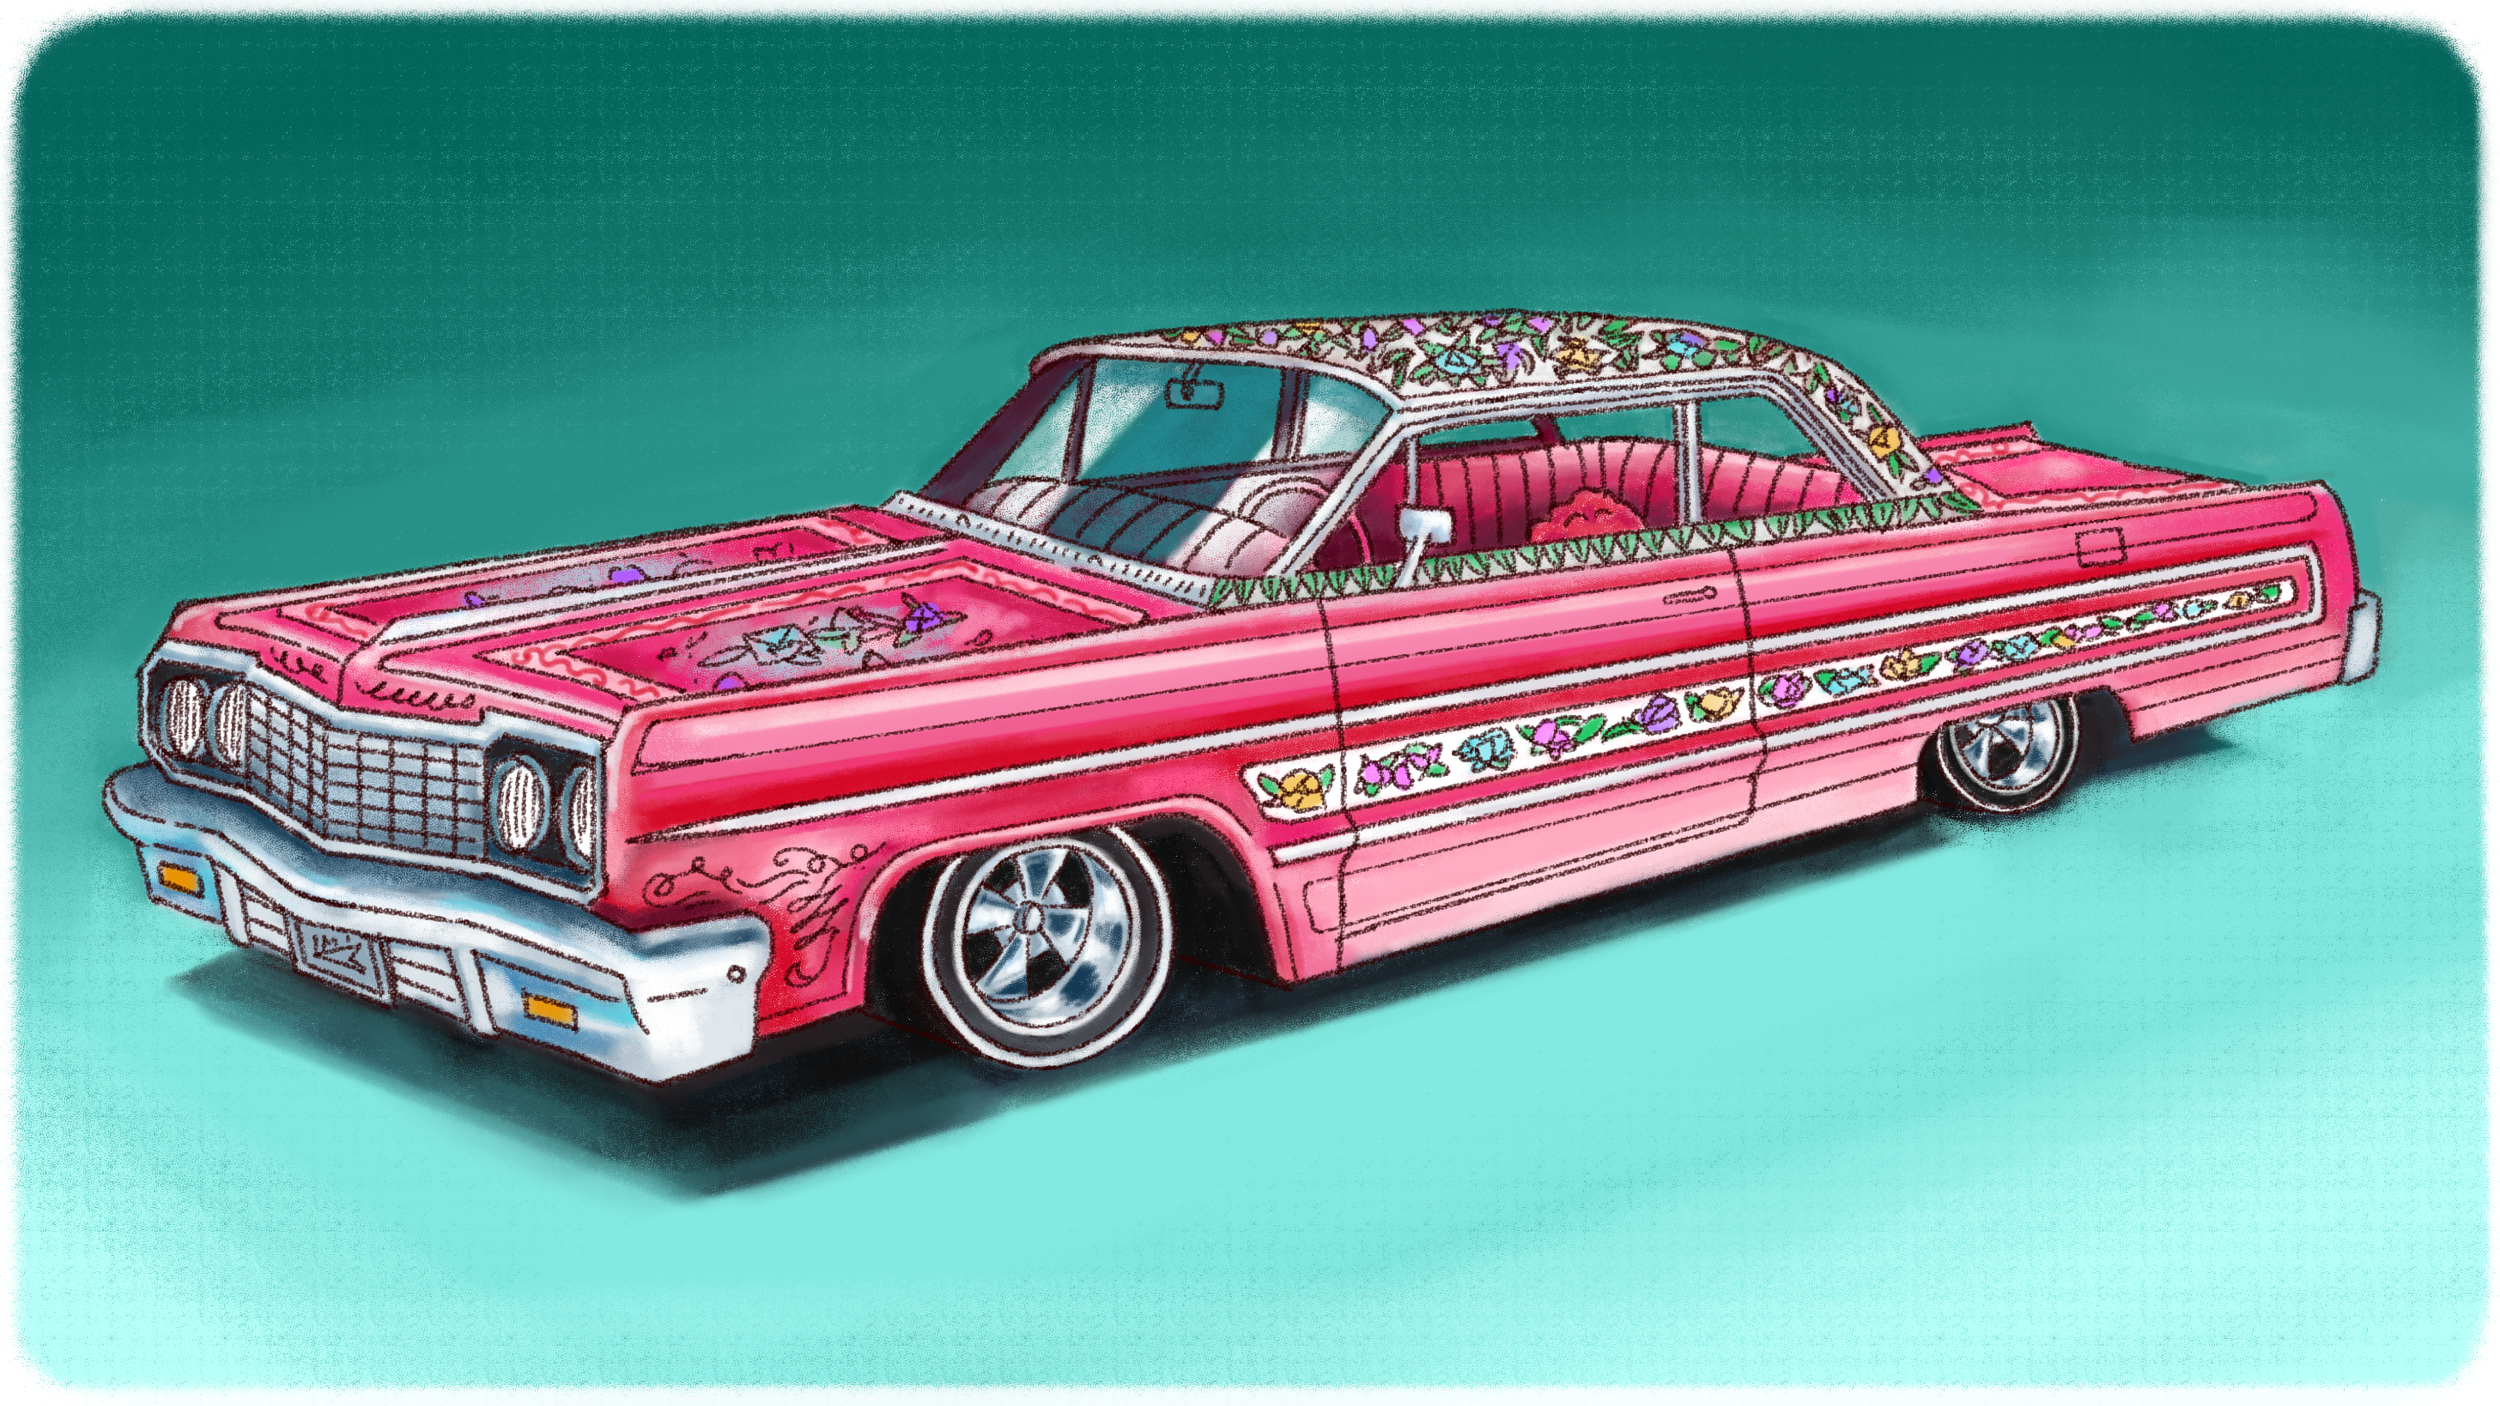 Hecho en México: Why Lowrider Murals Are So Insanely Detailed - Jalopnik - Lowriders